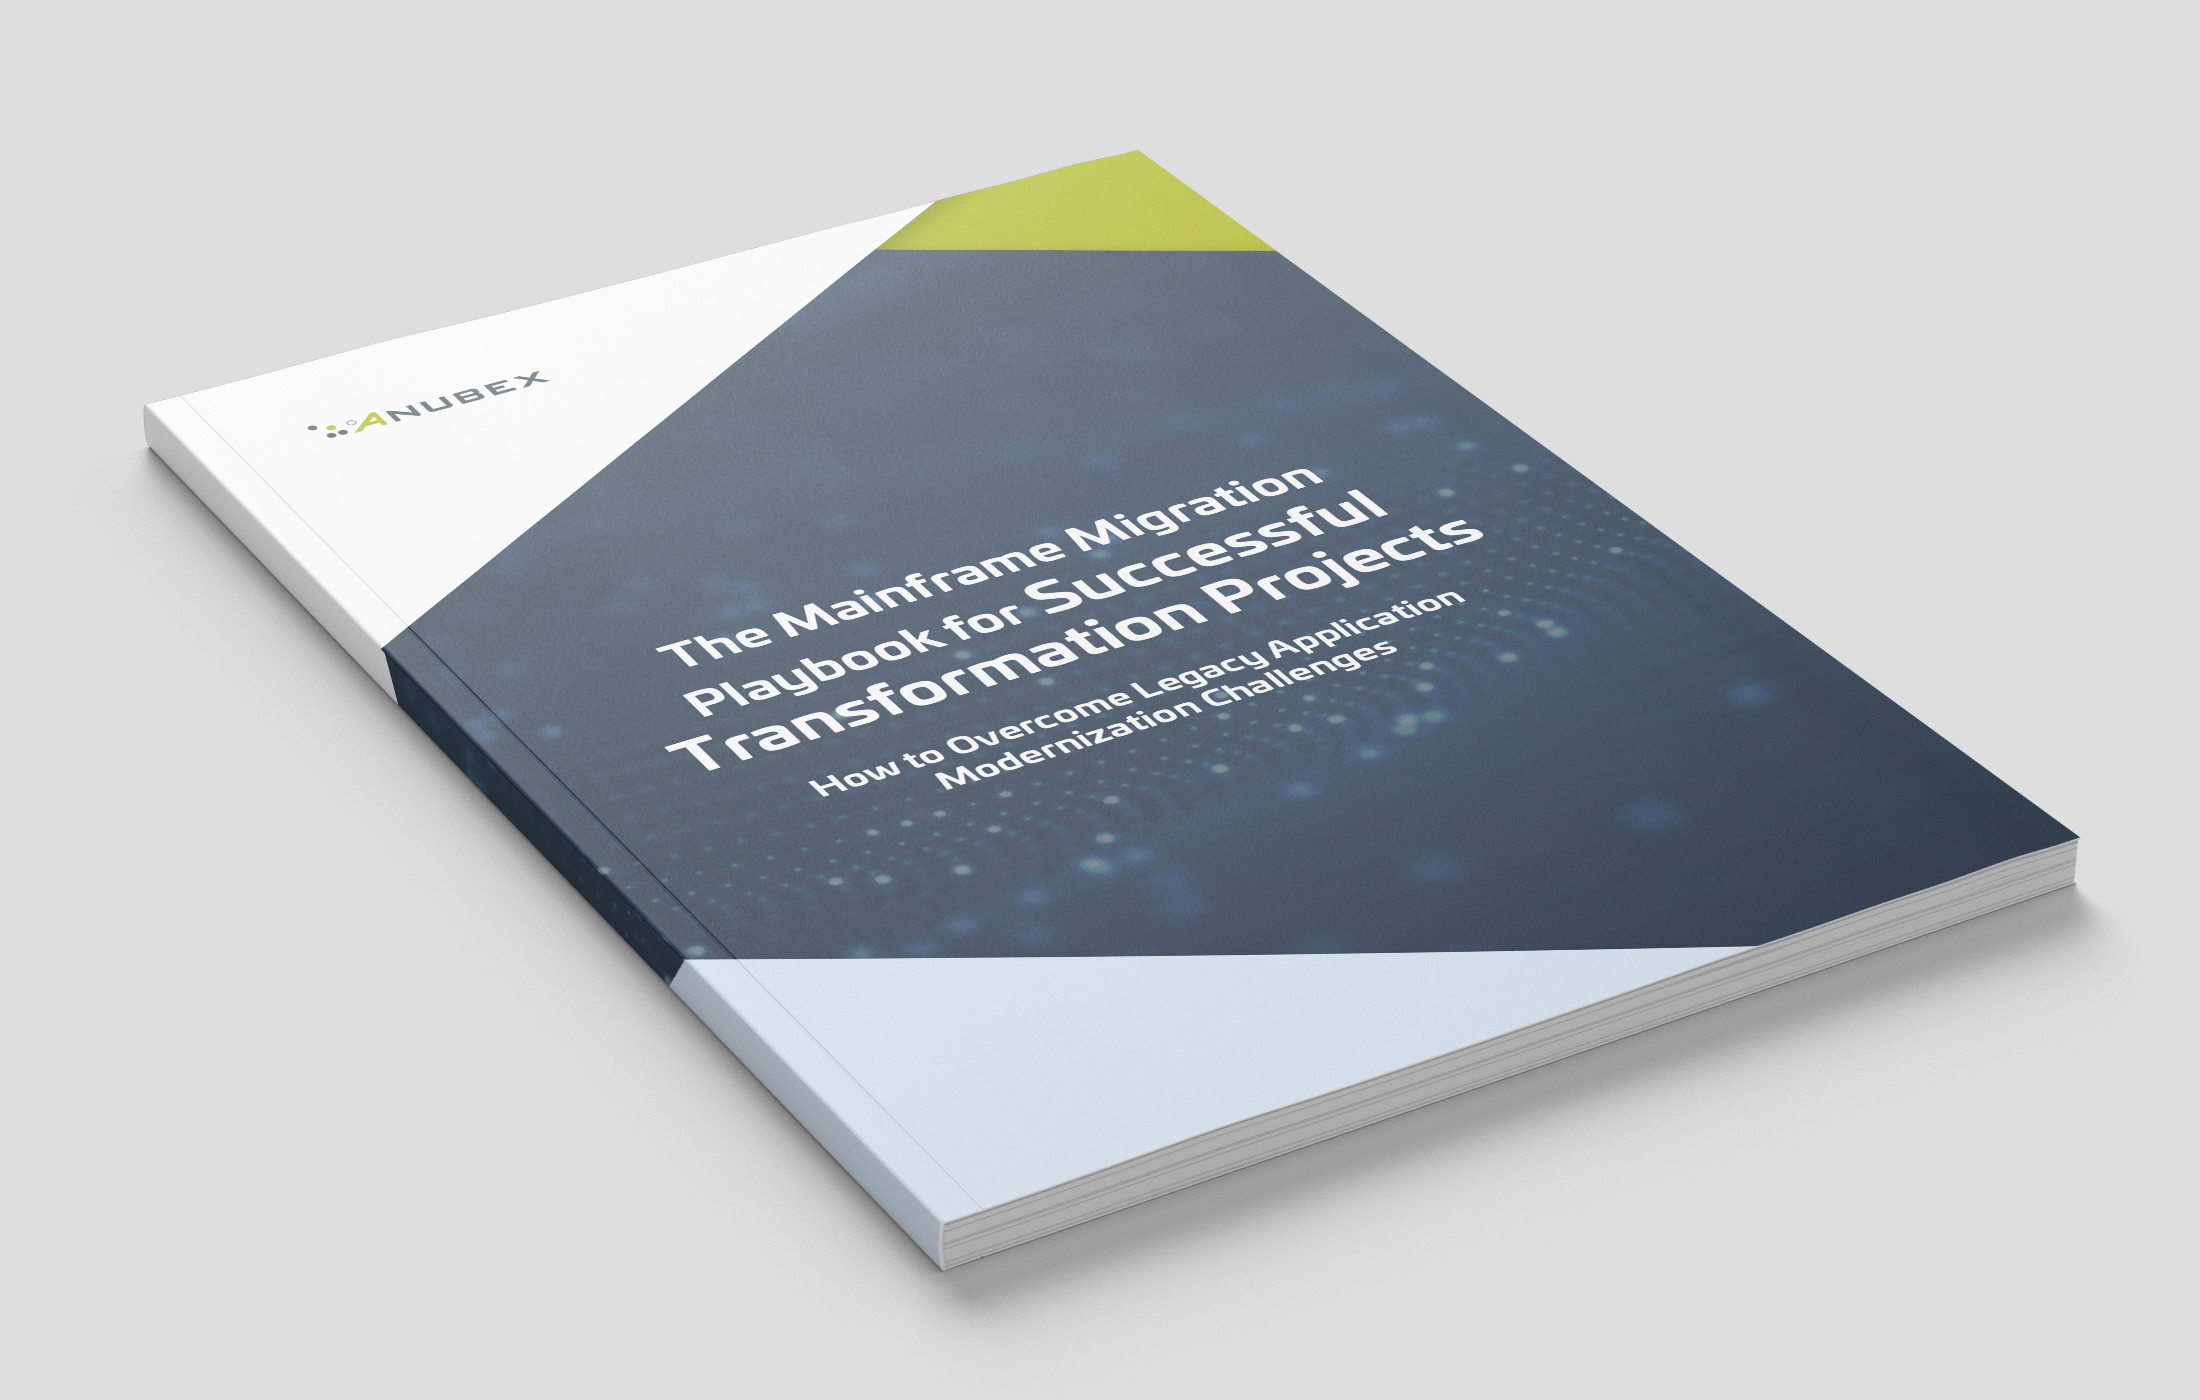 The Mainframe Migration Playbook for Successful Transformation Projects